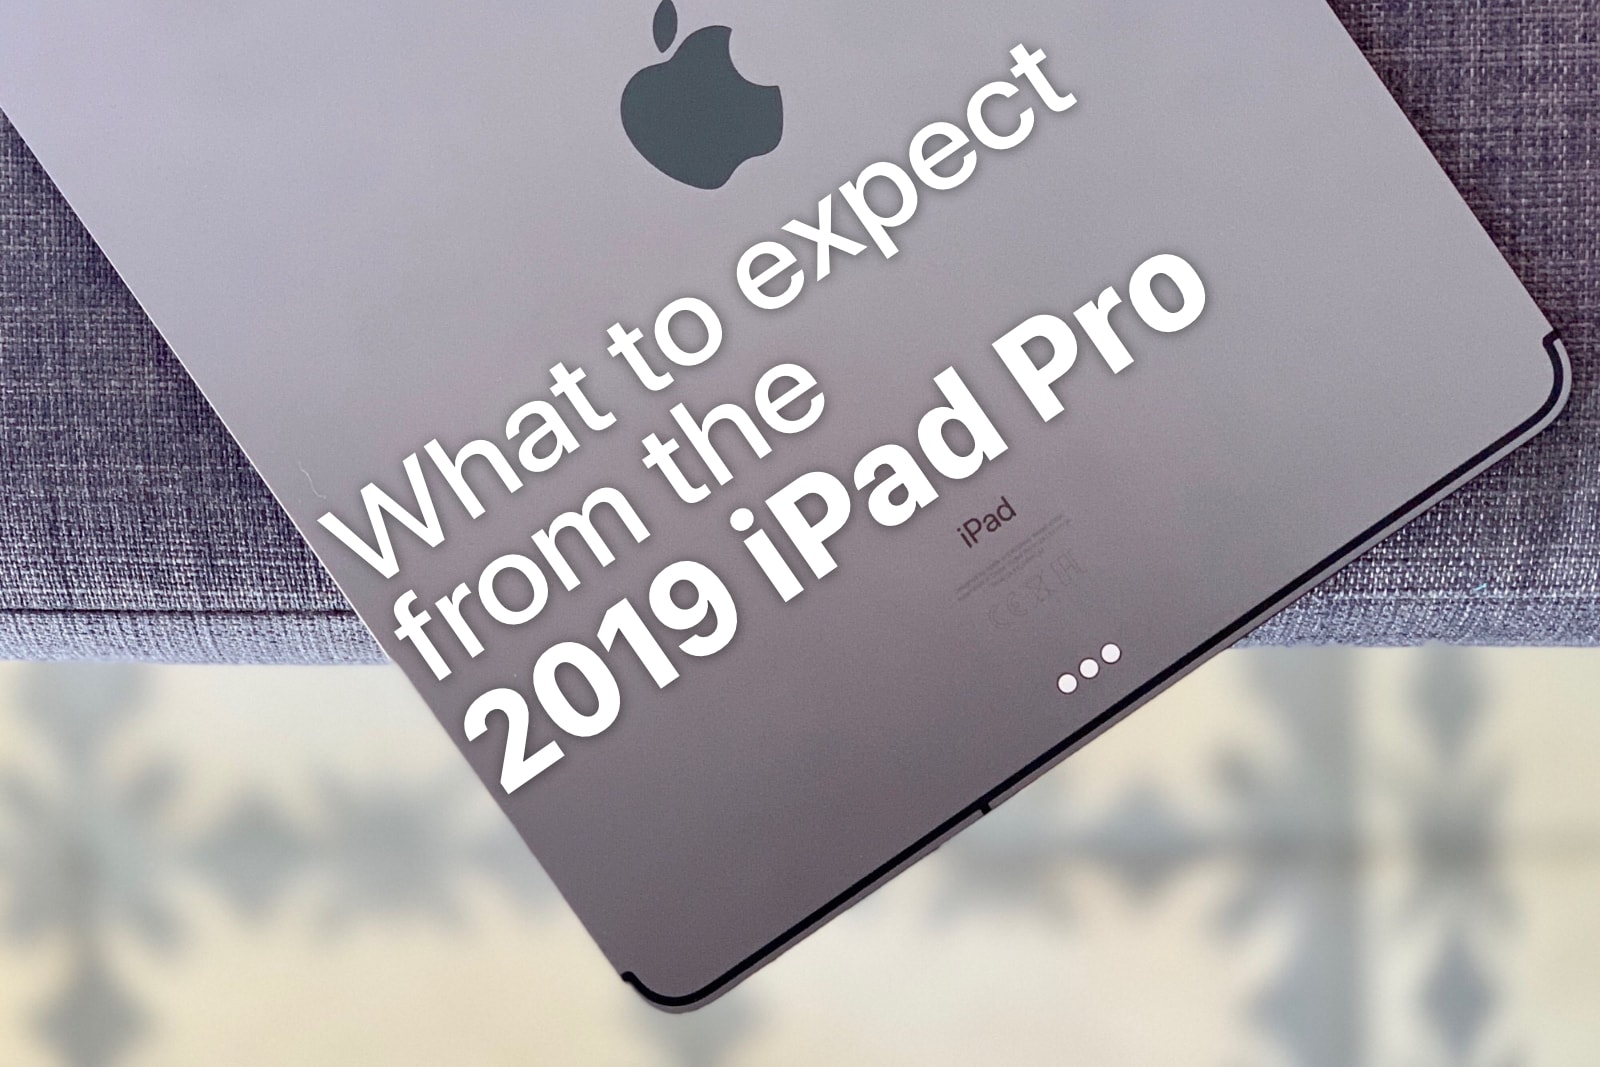 what-to-expect-2019-ipad-pro